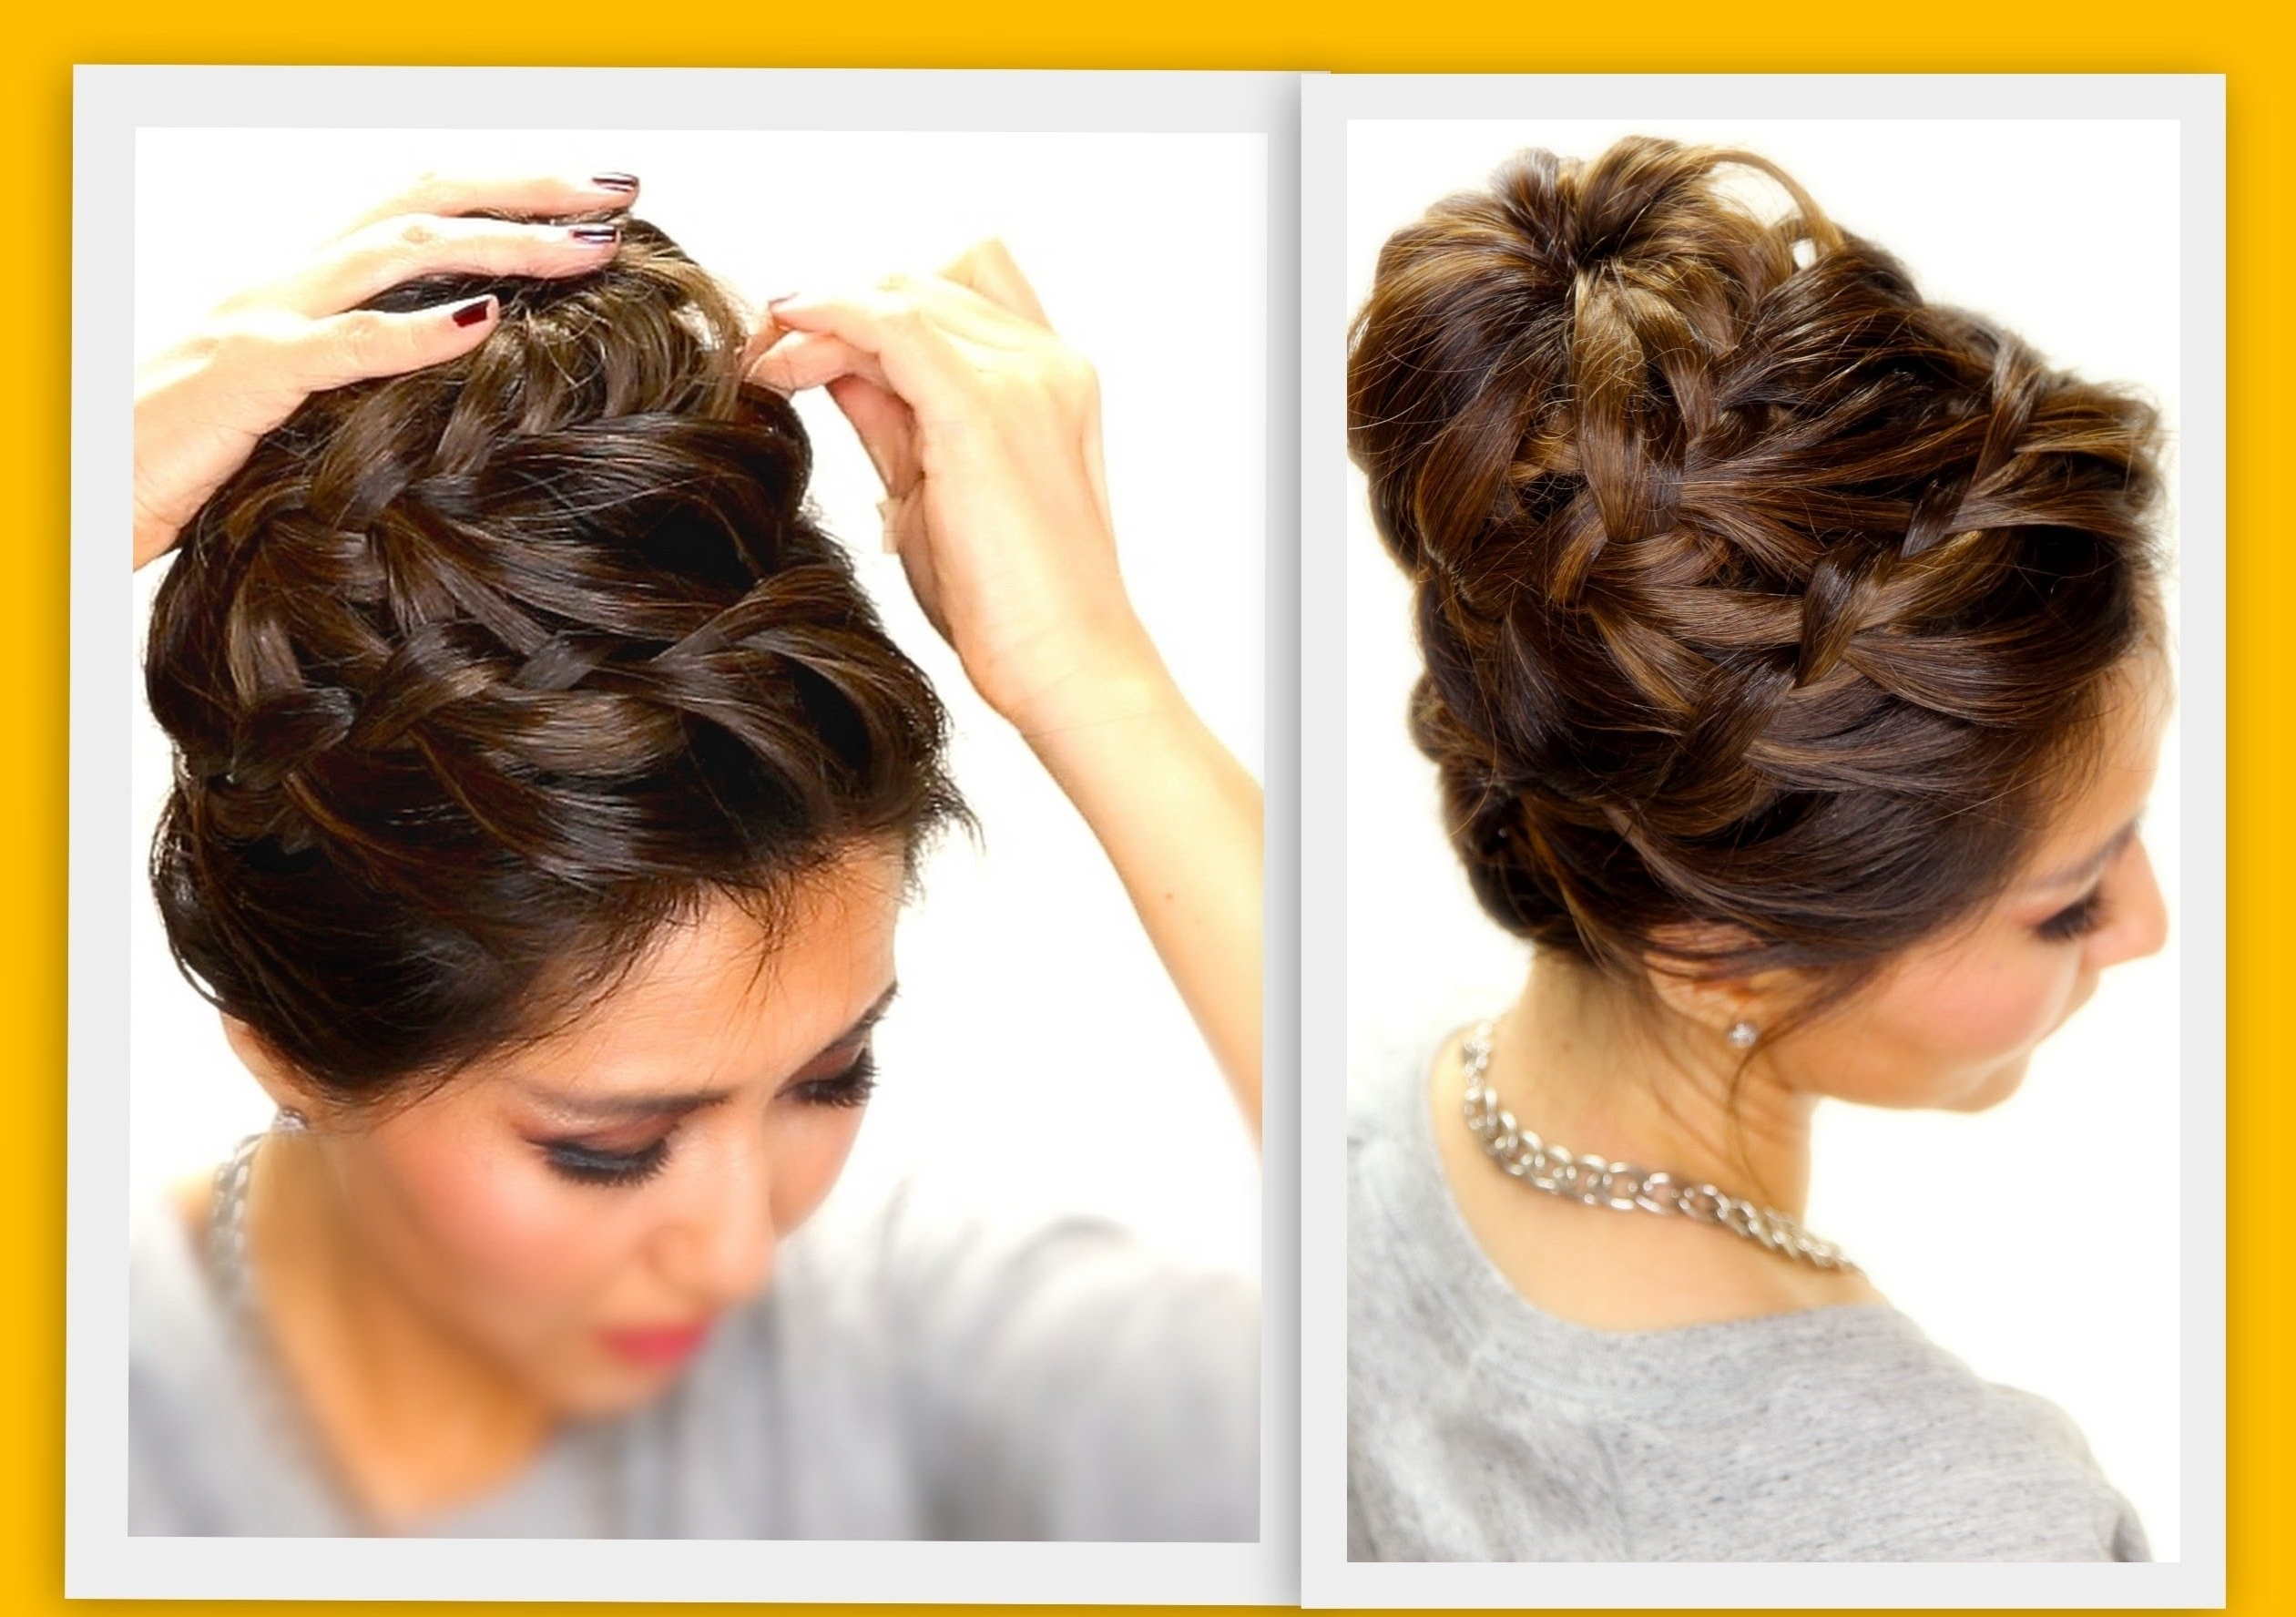 Updo Hairstyles For Layered Hair – Women Medium Haircut With Regard To Updo Bun Hairstyles (Gallery 5 of 15)